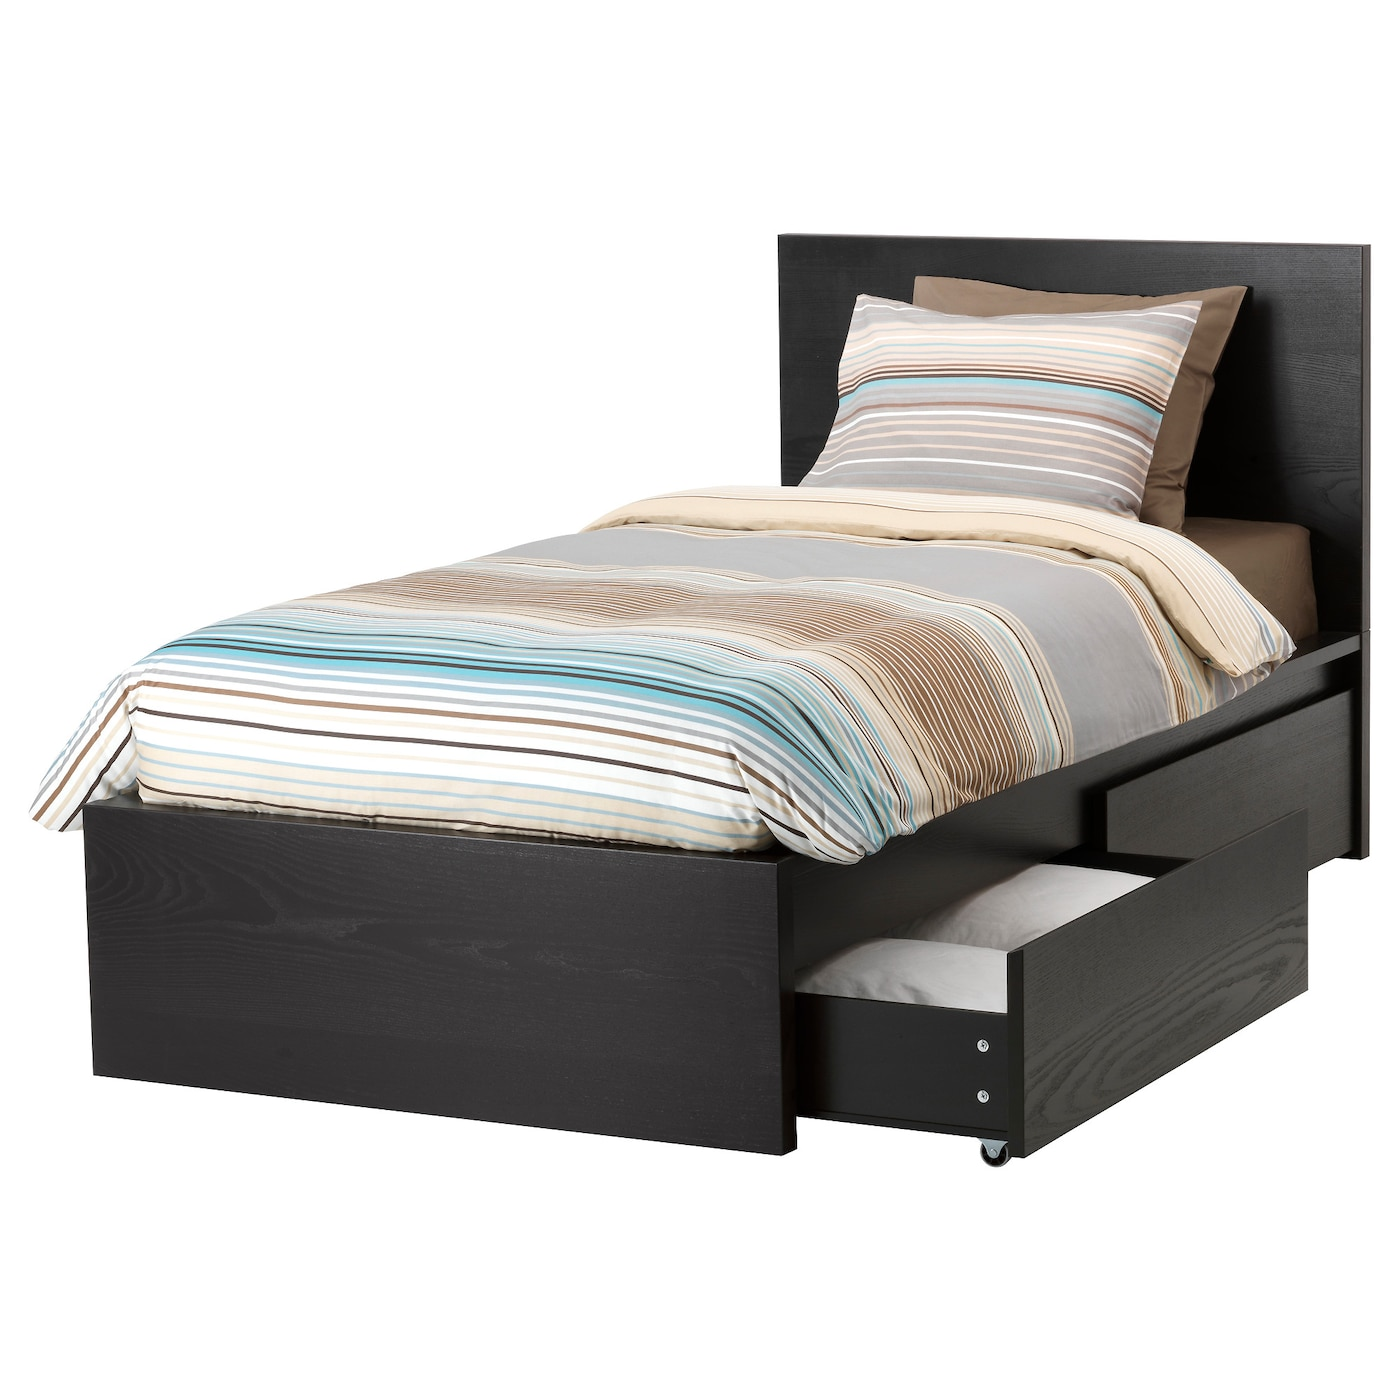 malm bed frame high w 2 storage boxes black brown lur y. Black Bedroom Furniture Sets. Home Design Ideas